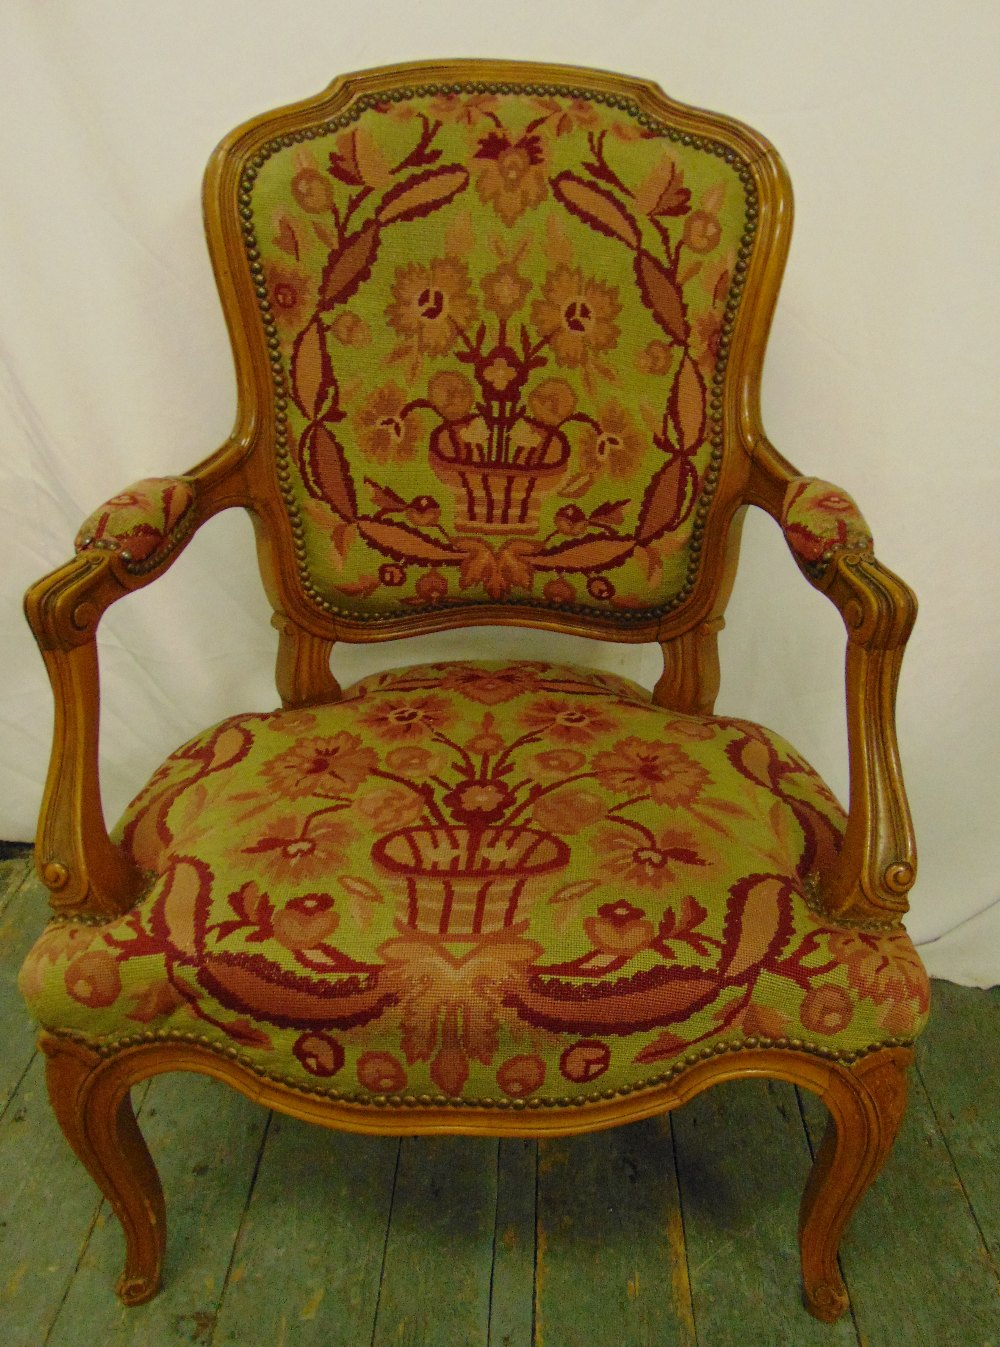 Lot 23 - A mahogany armchair with upholstered tapestry seat and back on cabriole legs